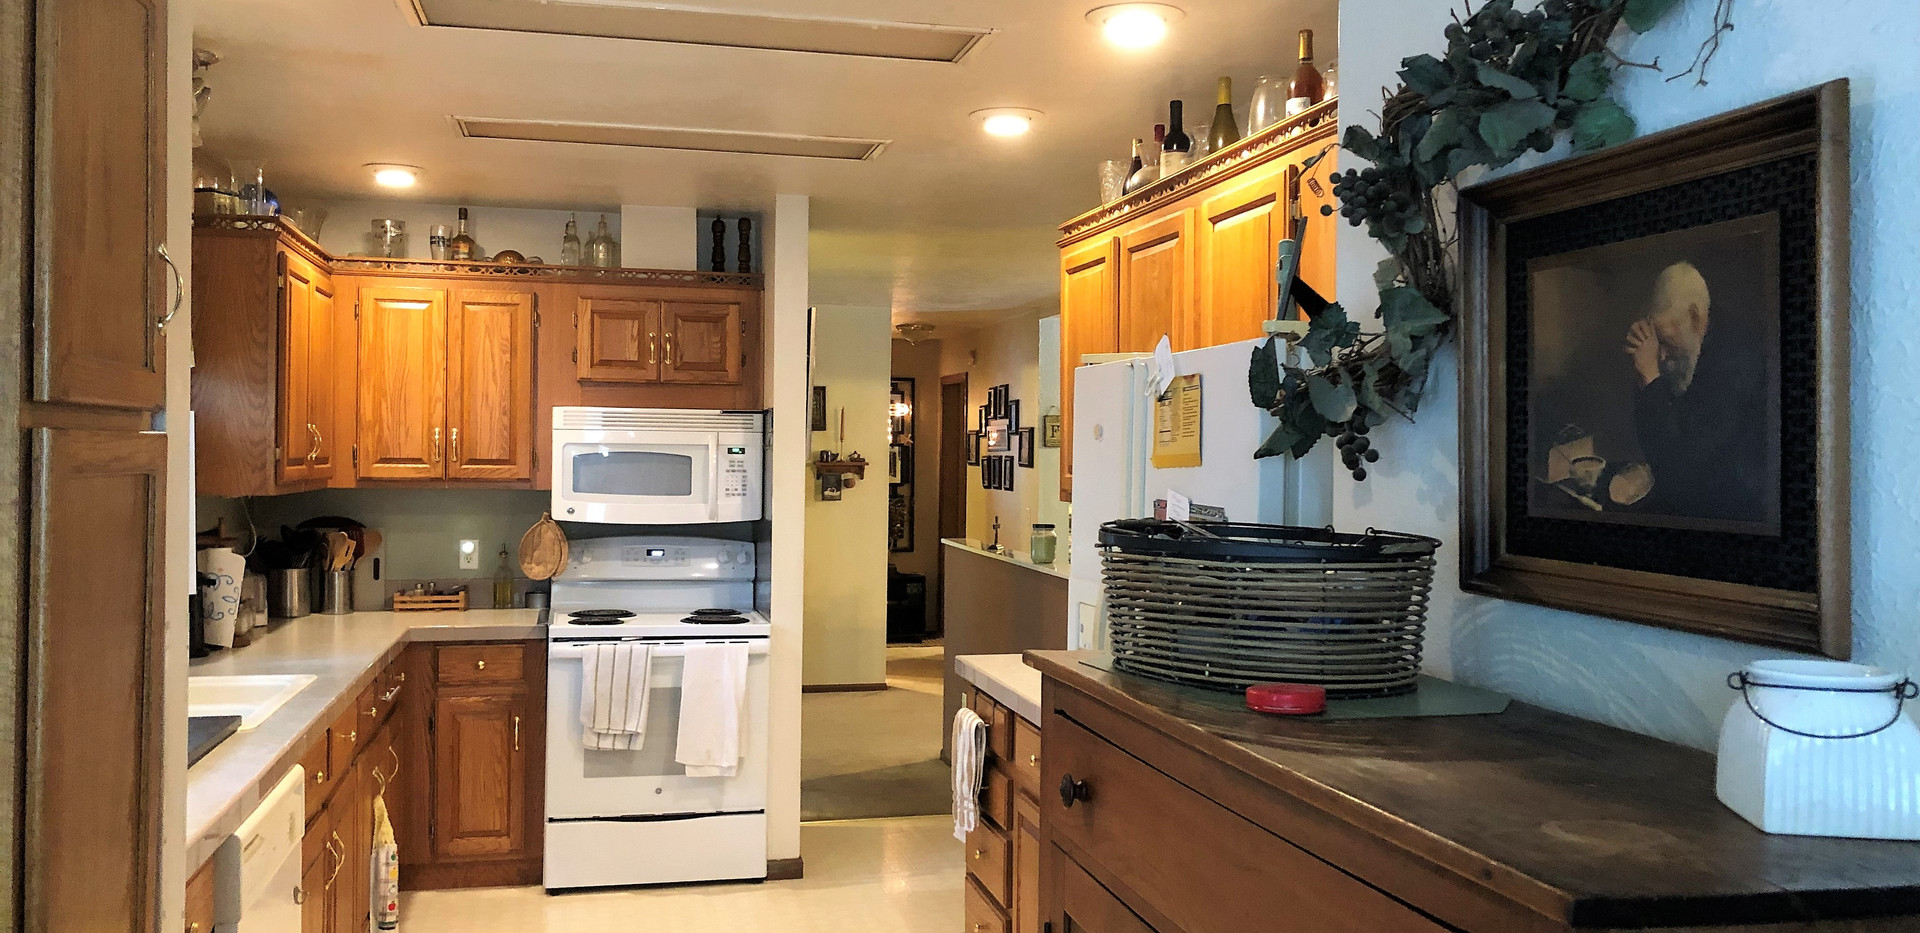 w309 Harrison Kitchen 2019.jpg